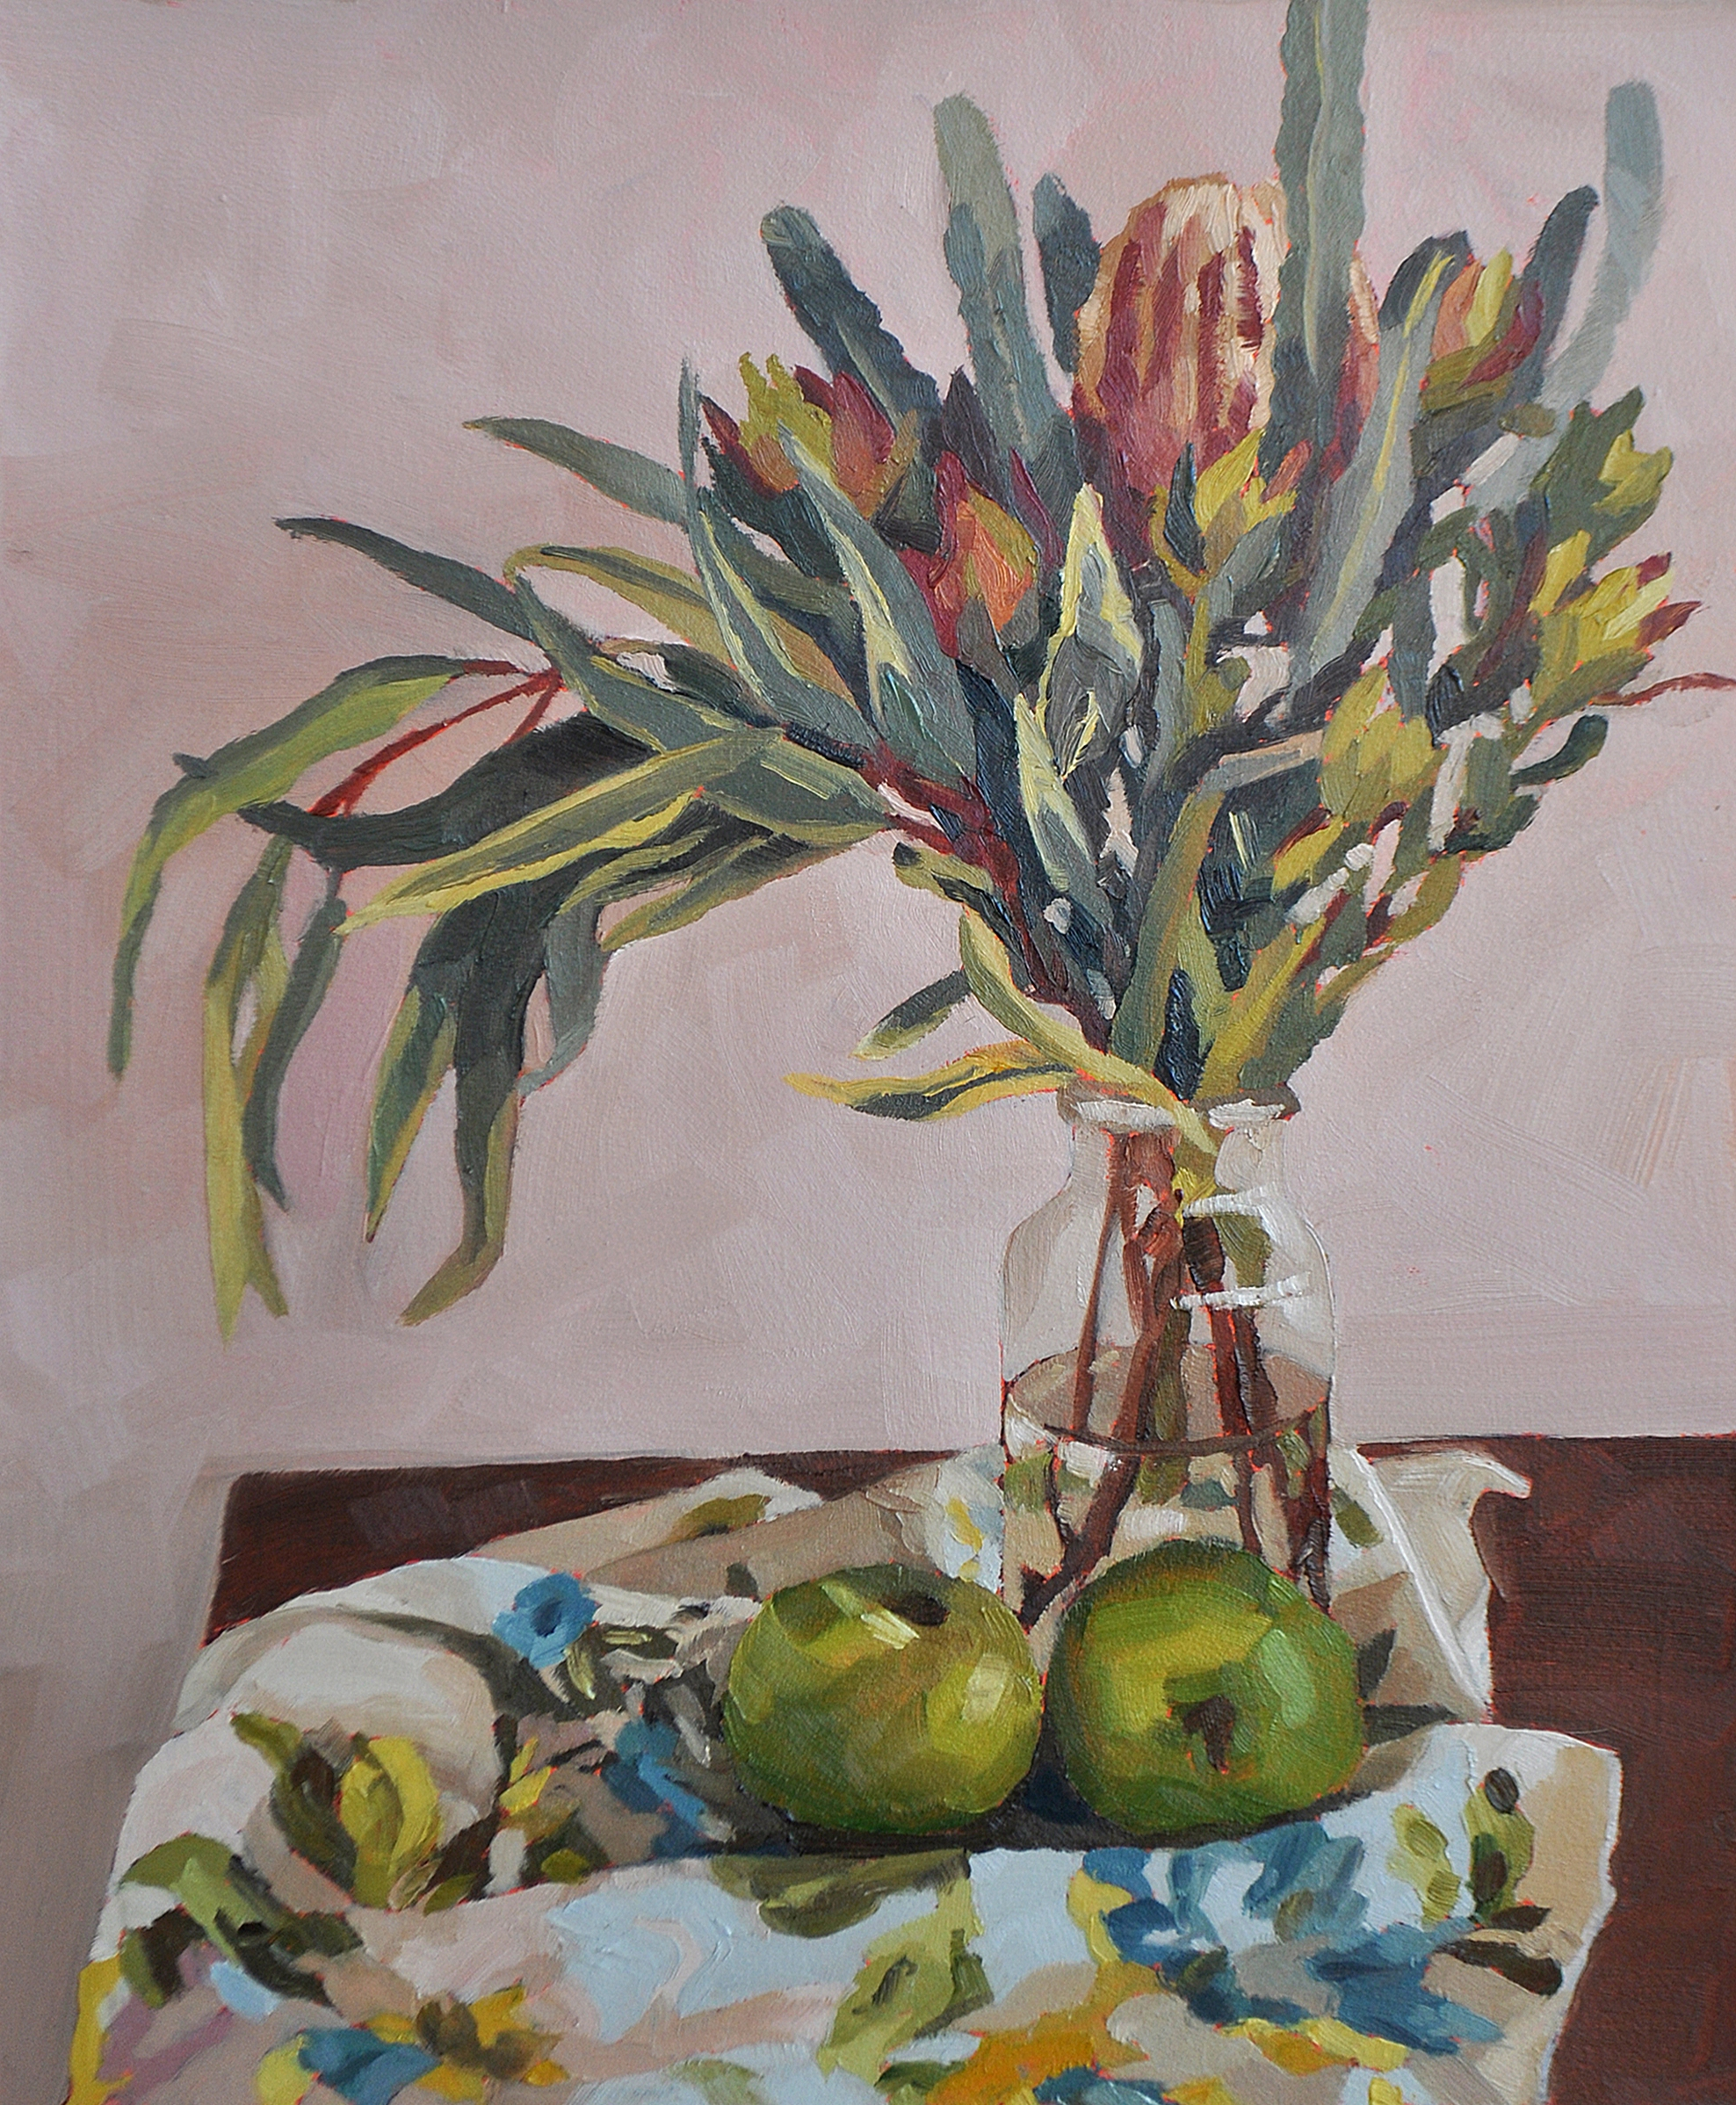 'Bec's Granny Smiths' oil painting by Emma Fuss